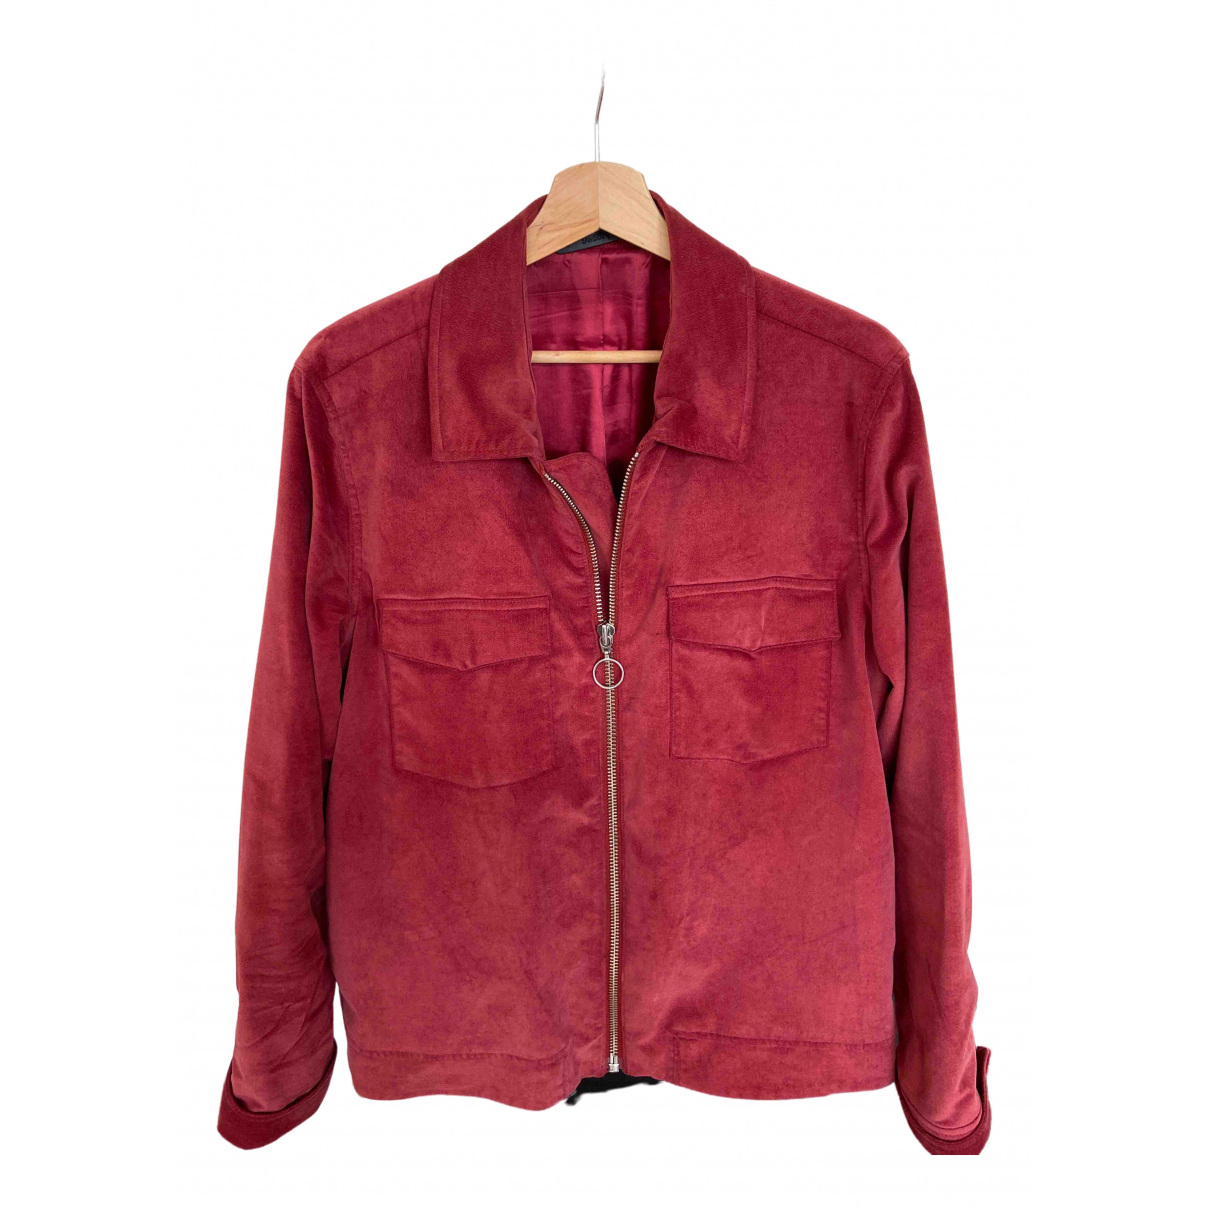 Samsoe & Samsoe \N Burgundy Cotton jacket  for Men M International